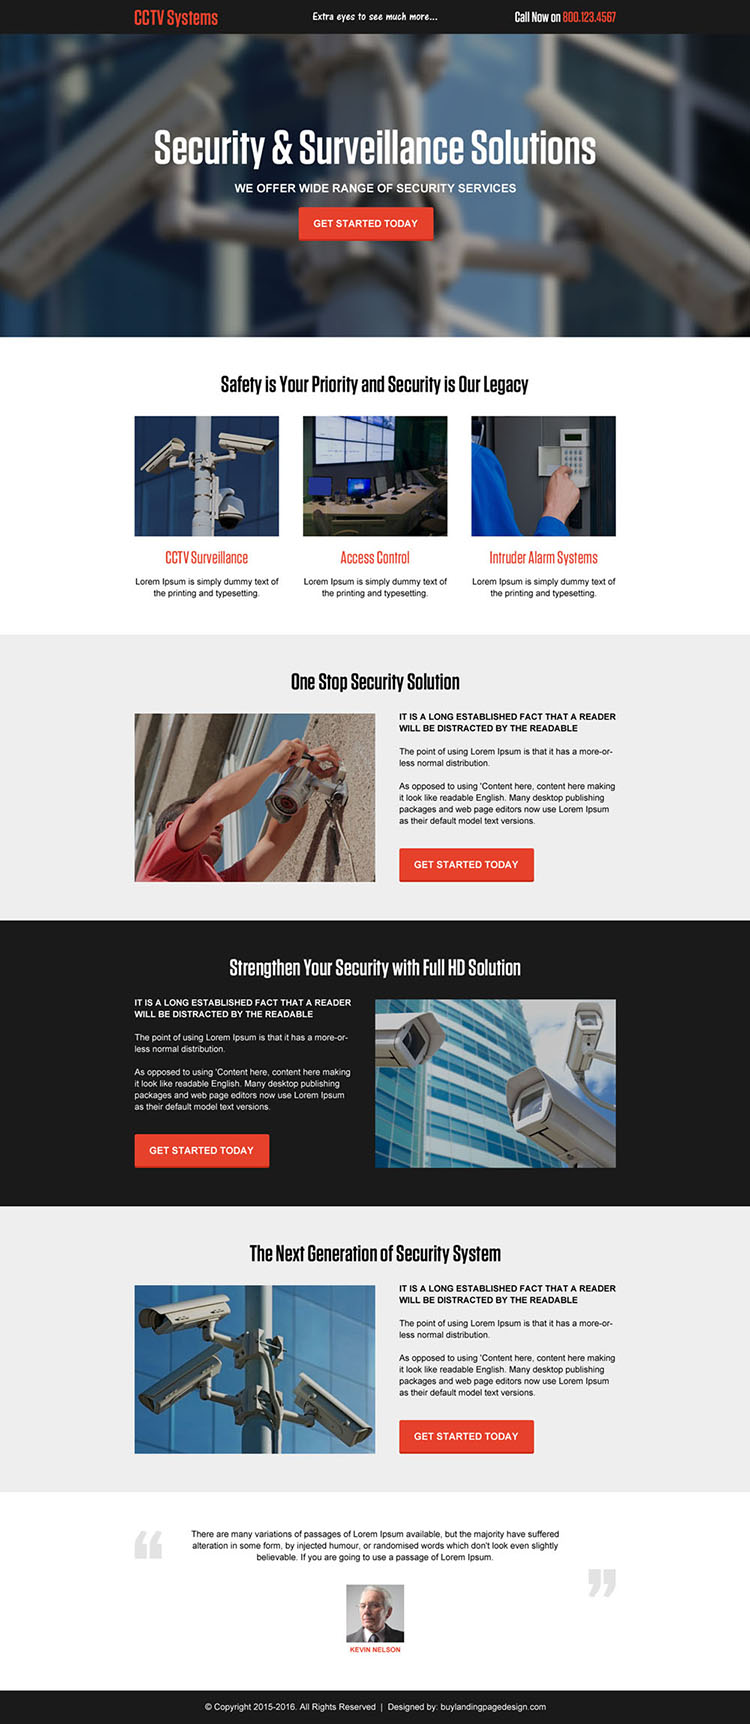 cctv security solution call to action landing page design